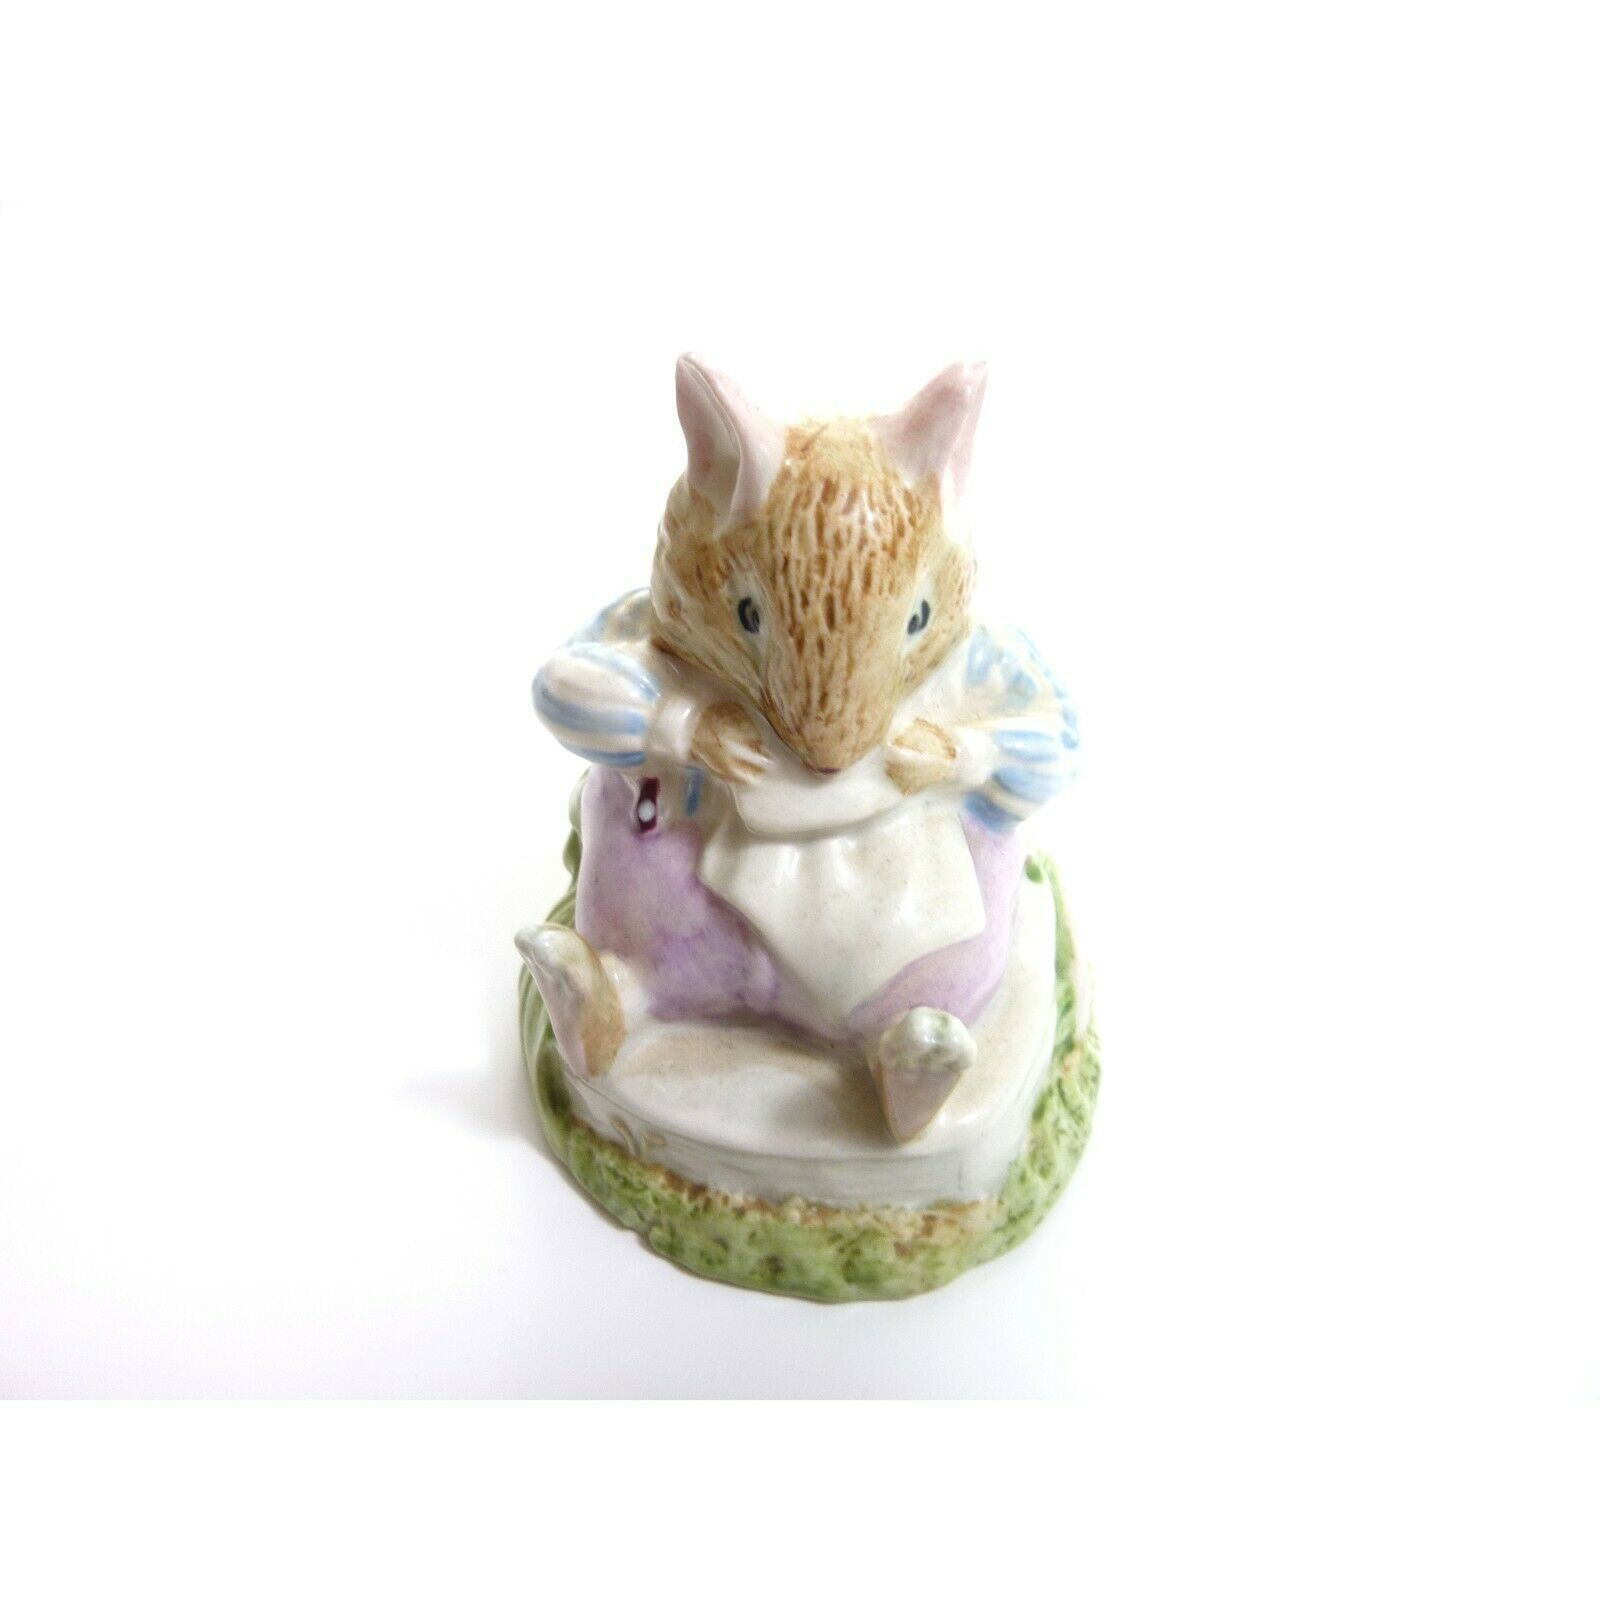 Vintage Mr Toadflax, no cushion, tail on side Royal Doulton figurine